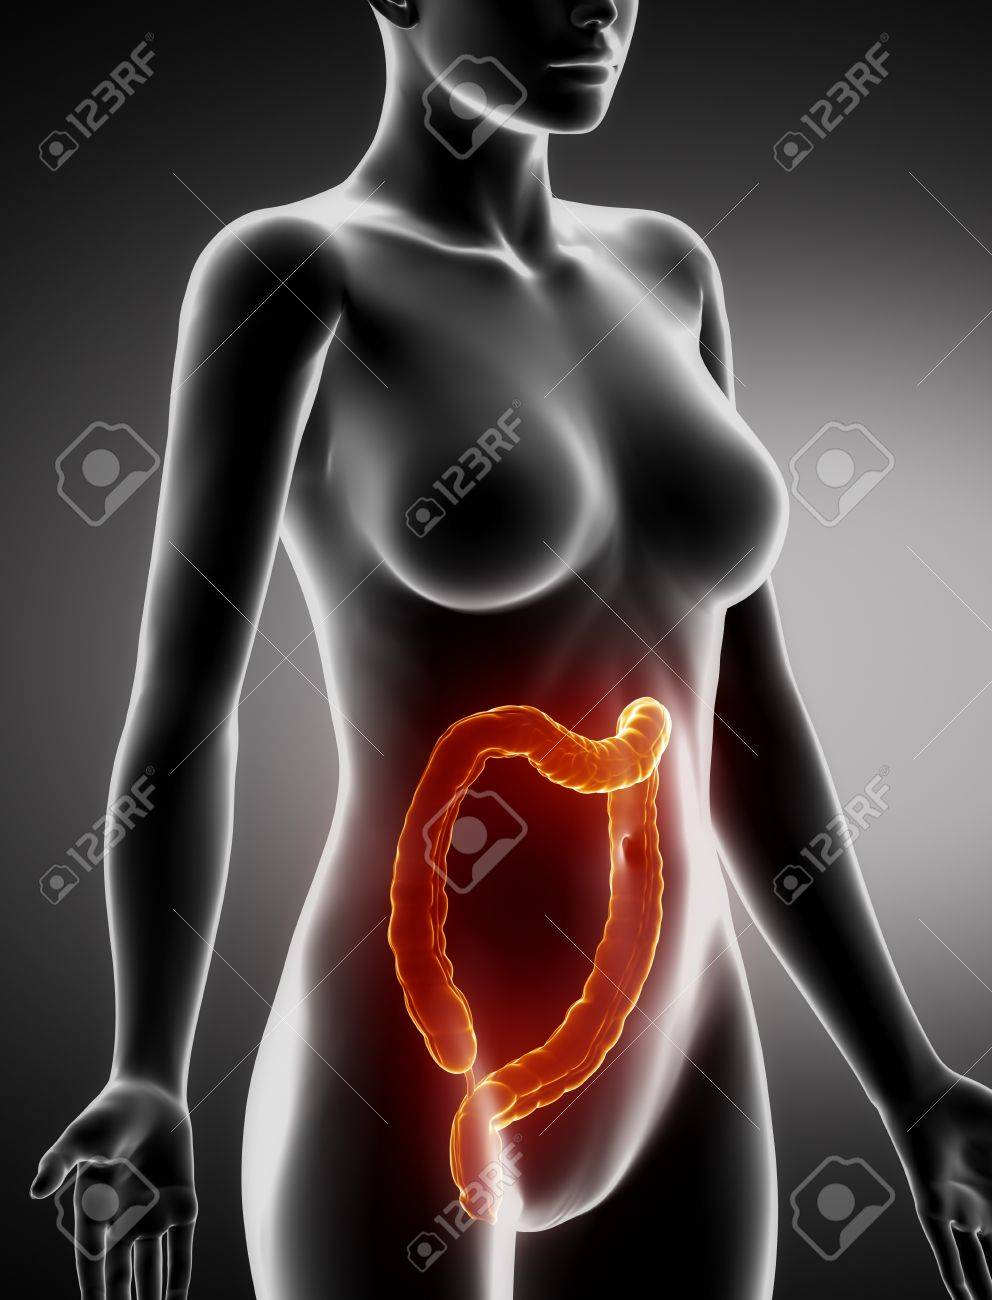 Female COLON anatomy x-ray lateral view Stock Photo - 21649734